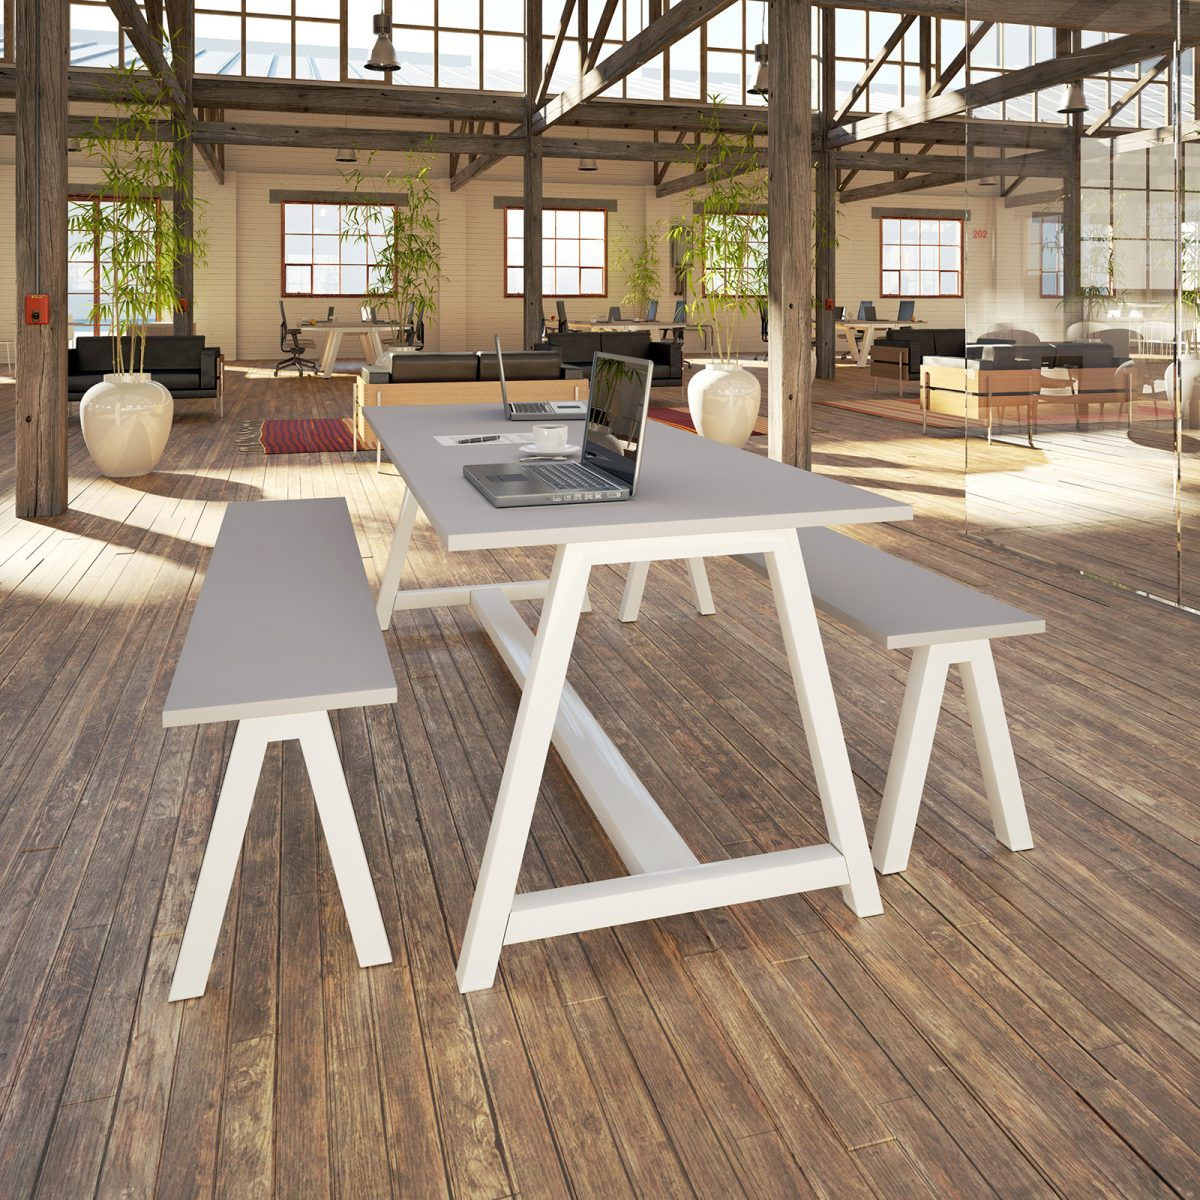 desk high table, meeting table, breakout table, grey table, white frame, A frame